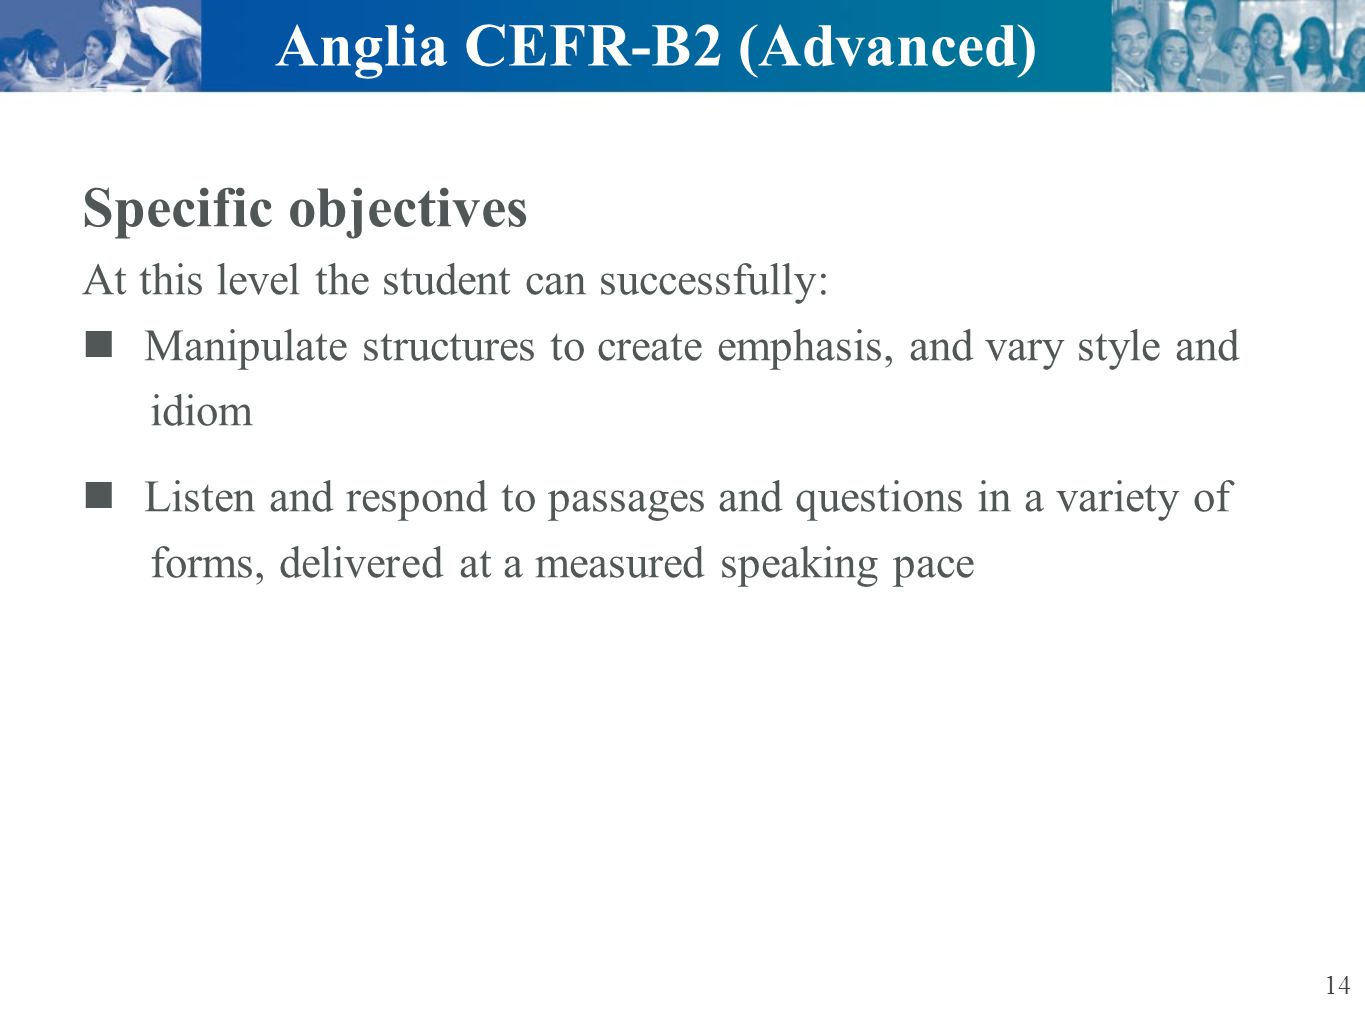 Anglia CEFR-B2 (Advanced)